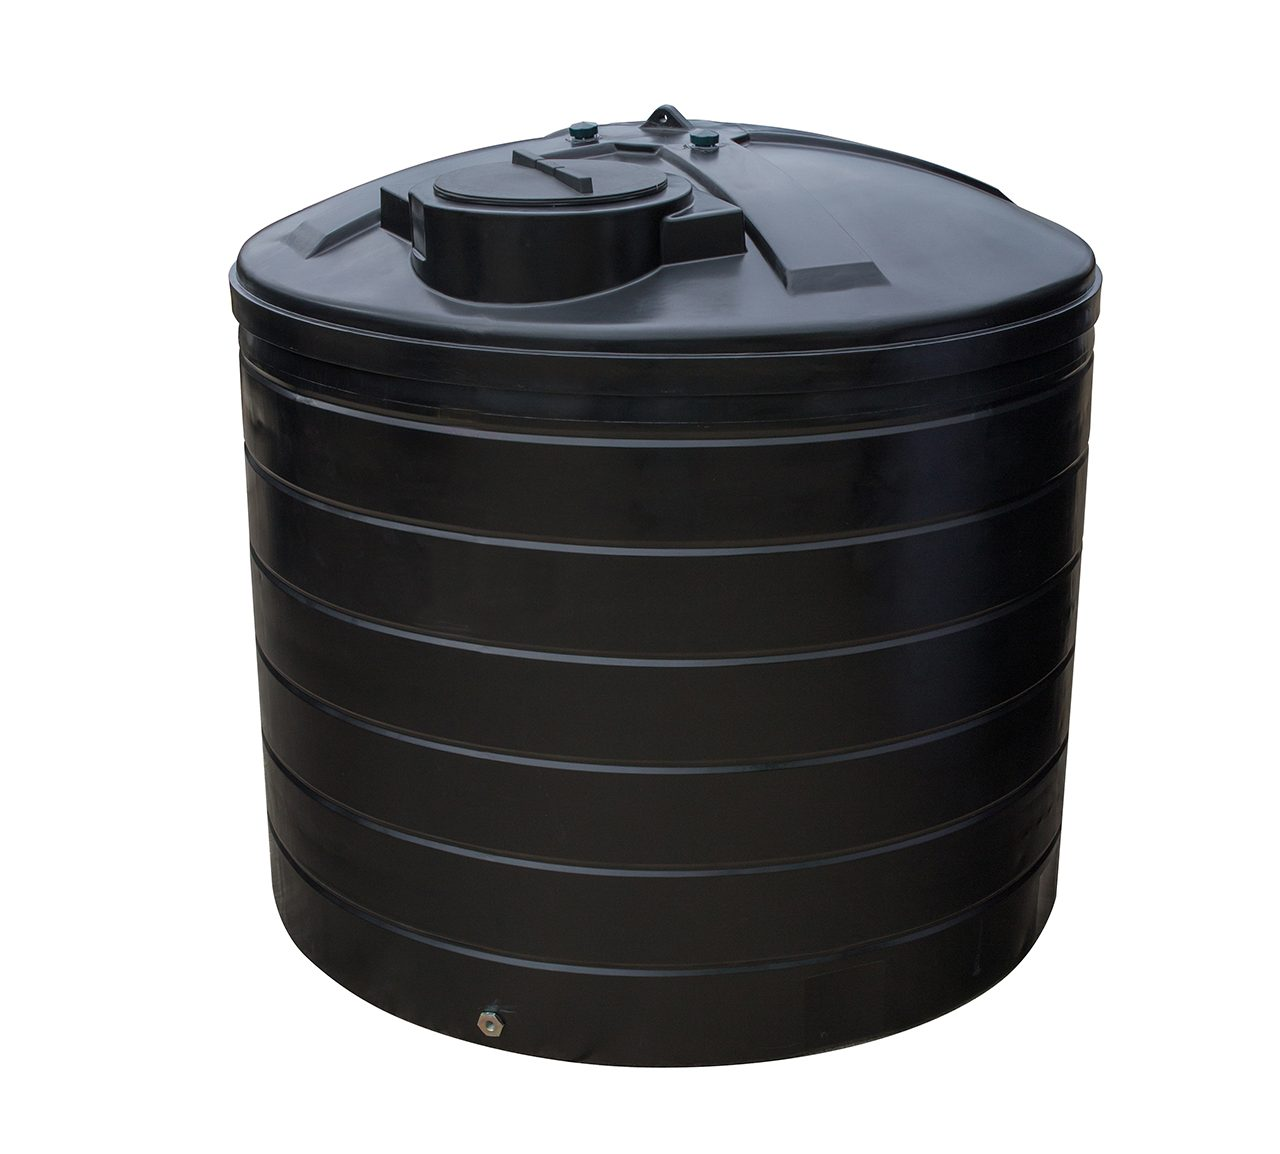 Tuffa 10000 litre single skin heating oil tank